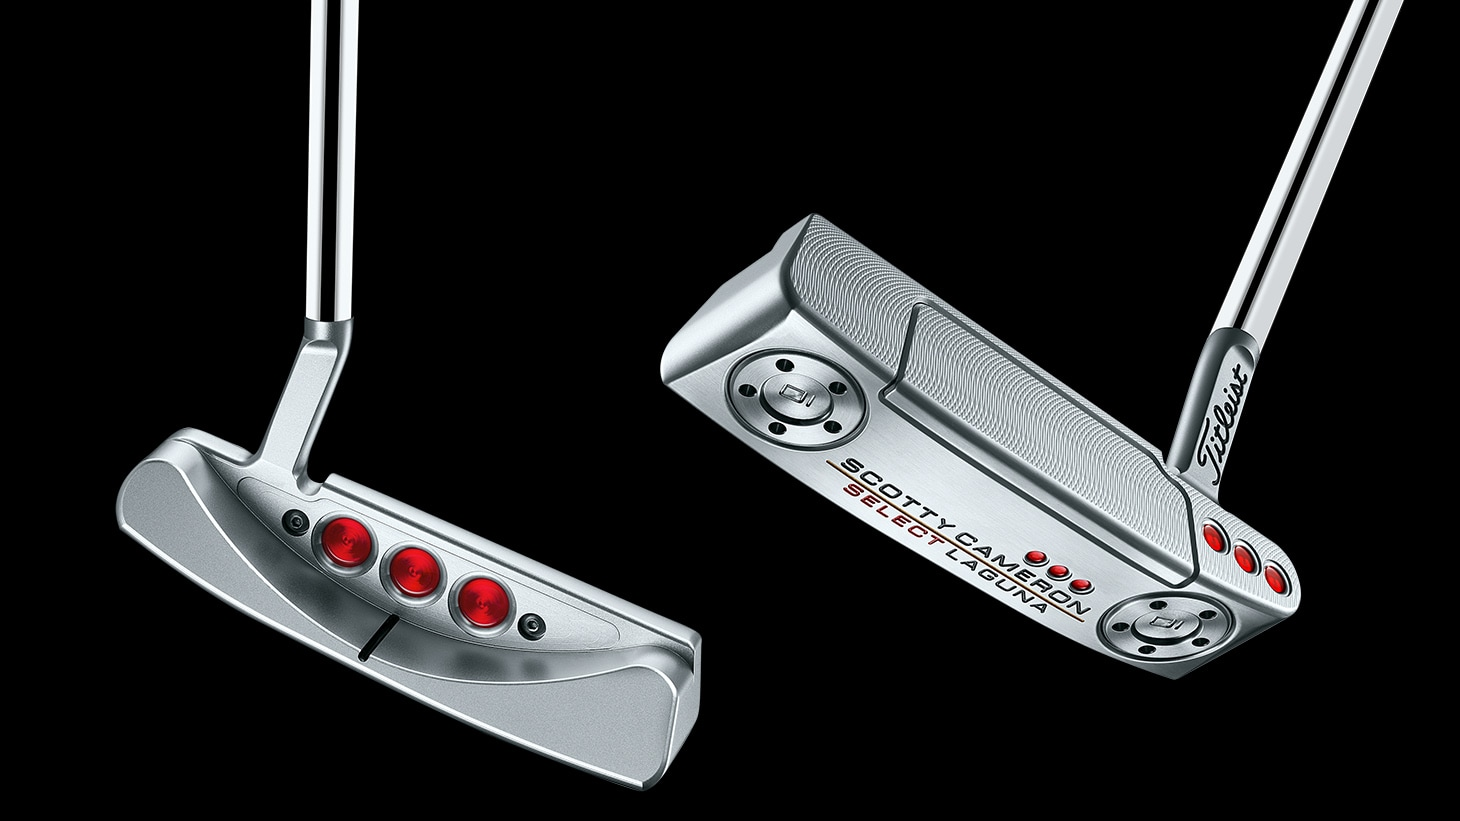 d9127fe8795 Titleist Introduces Next Generation of Scotty Cameron Select Putters ...